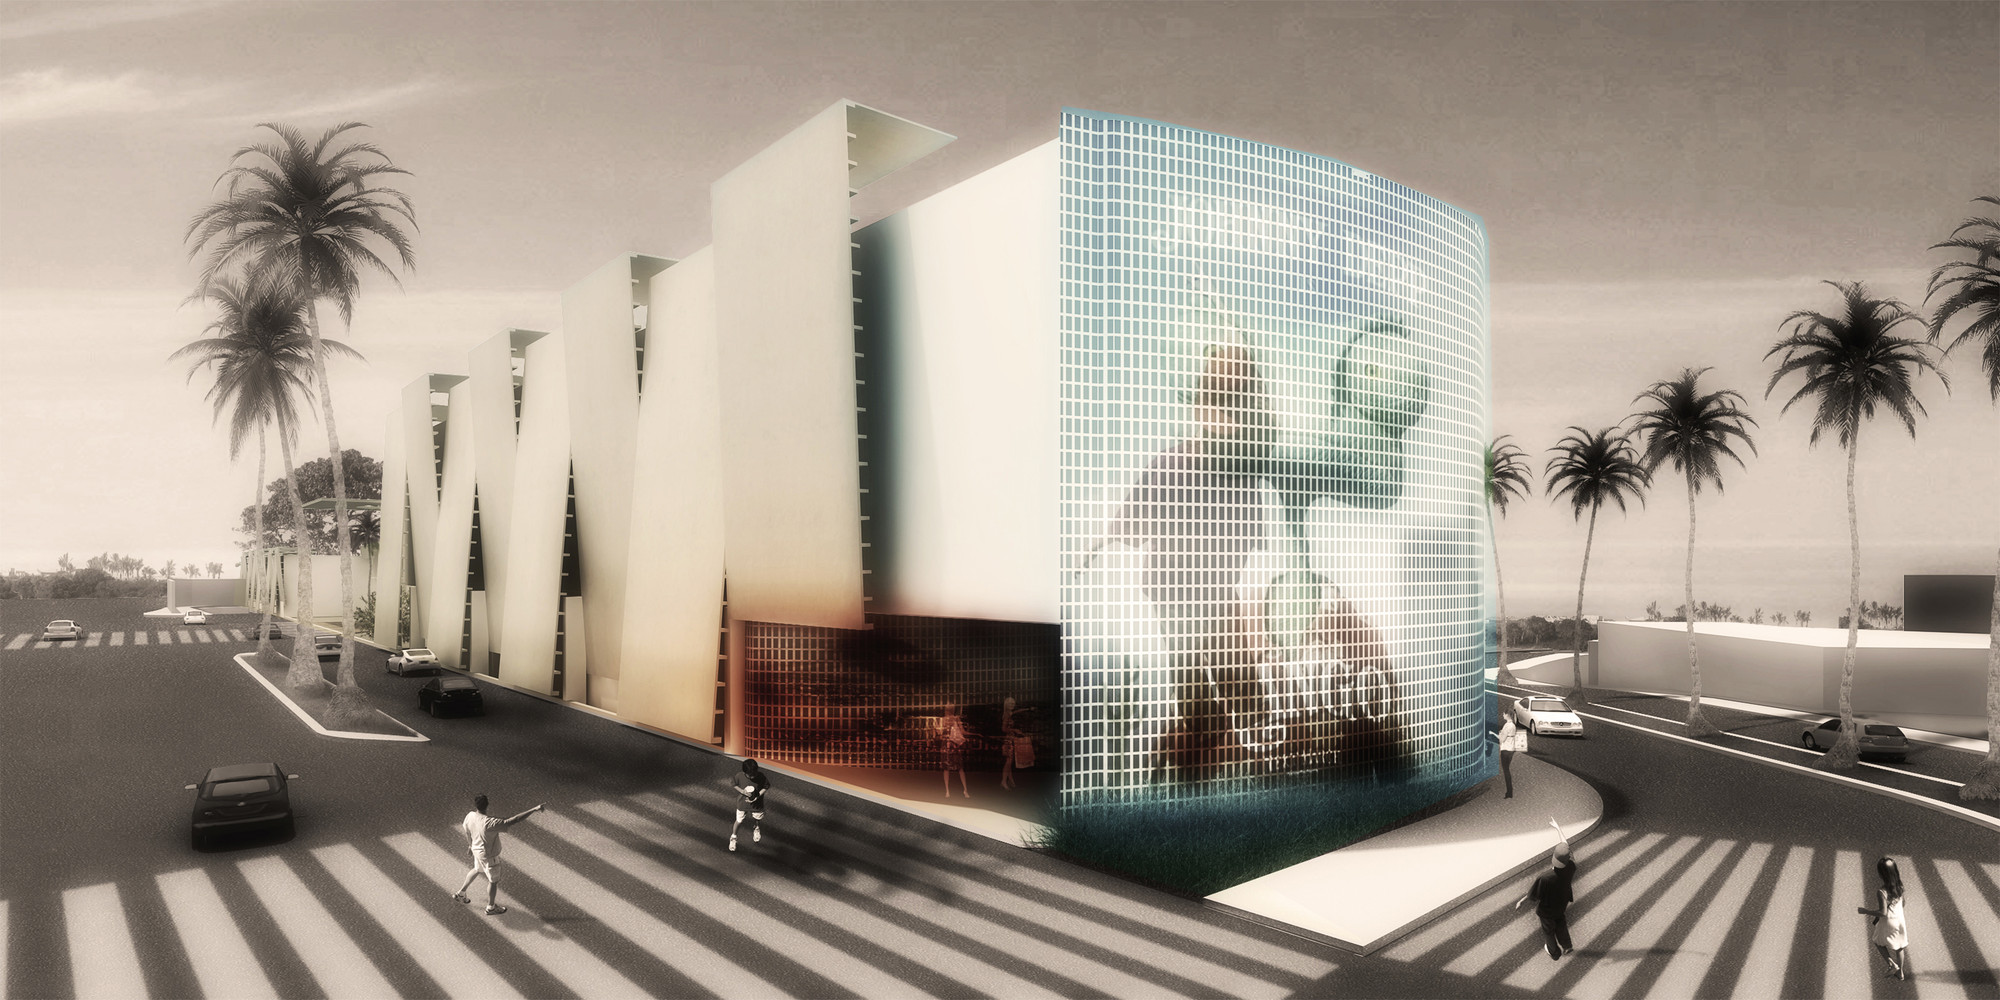 Latitud 19 arqmov workshop archdaily m xico for On arquitectura